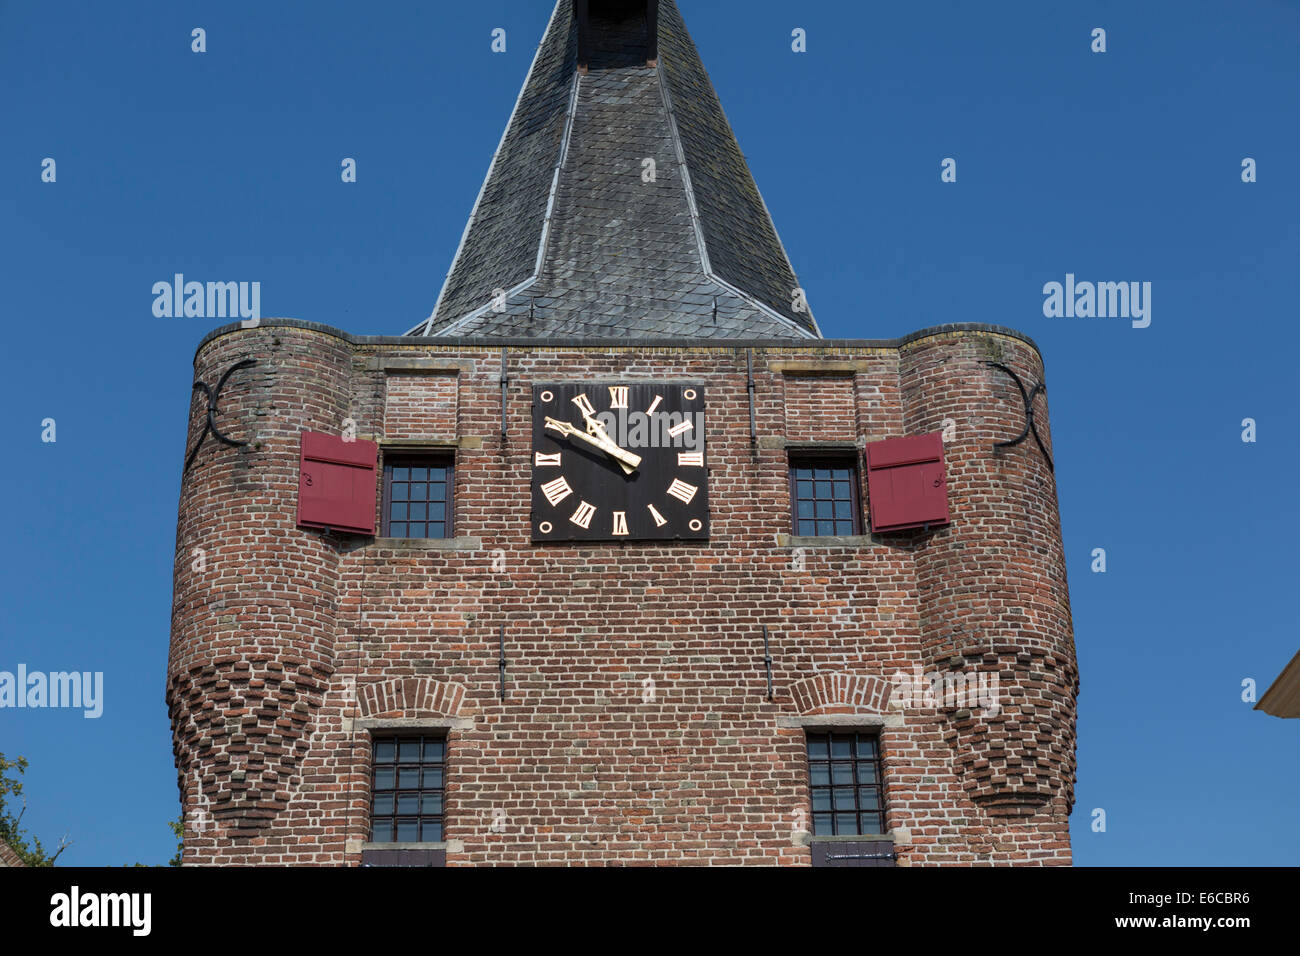 Tower of the  city gate of Elburg, an old  Hanseatic city in the province Gelderland in the Netherlands - Stock Image